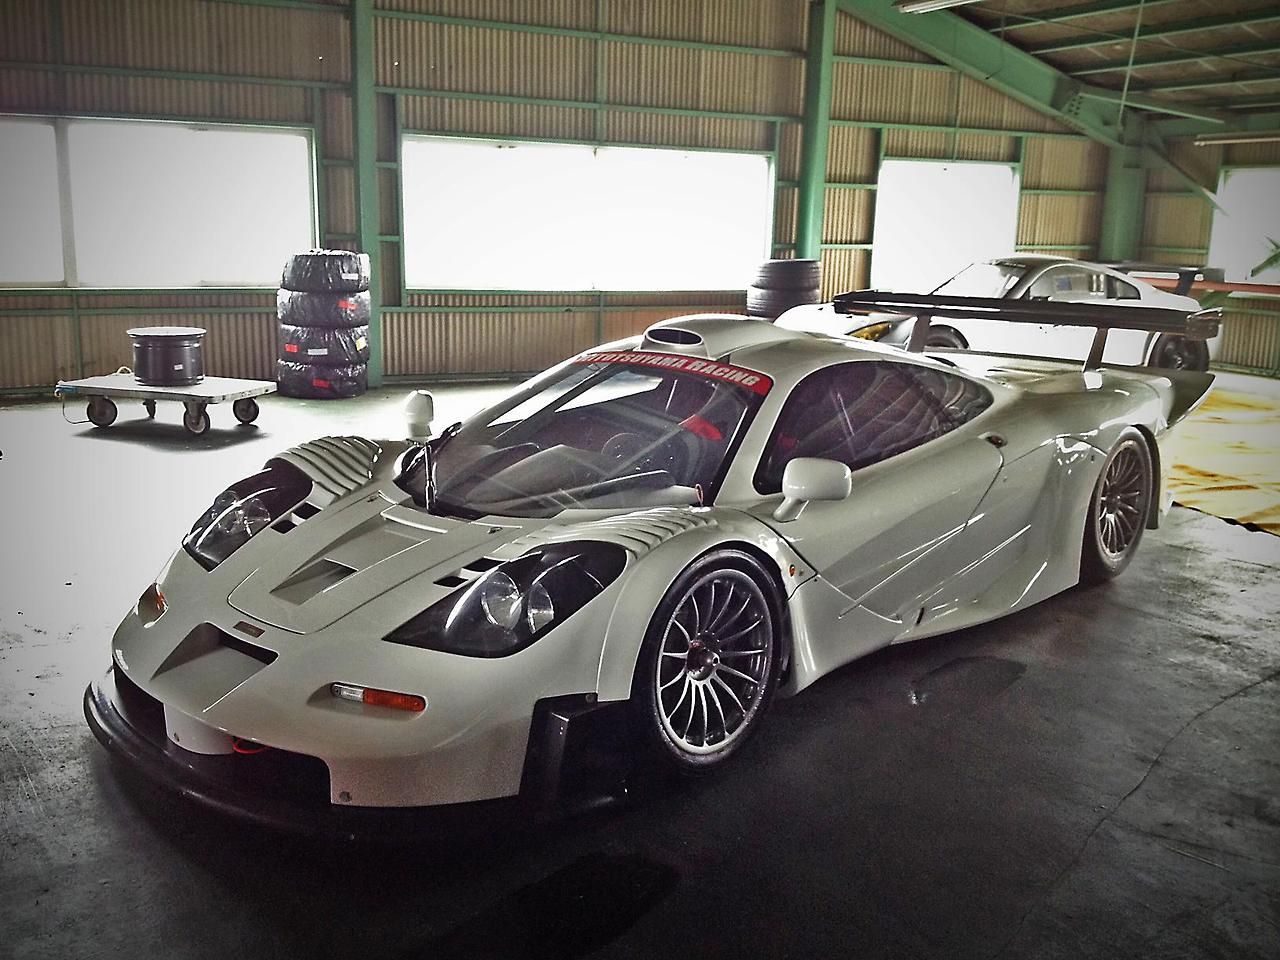 Pin By Packair On Classic Cars Mclaren F1 Mclaren Cars Cool Car Pictures